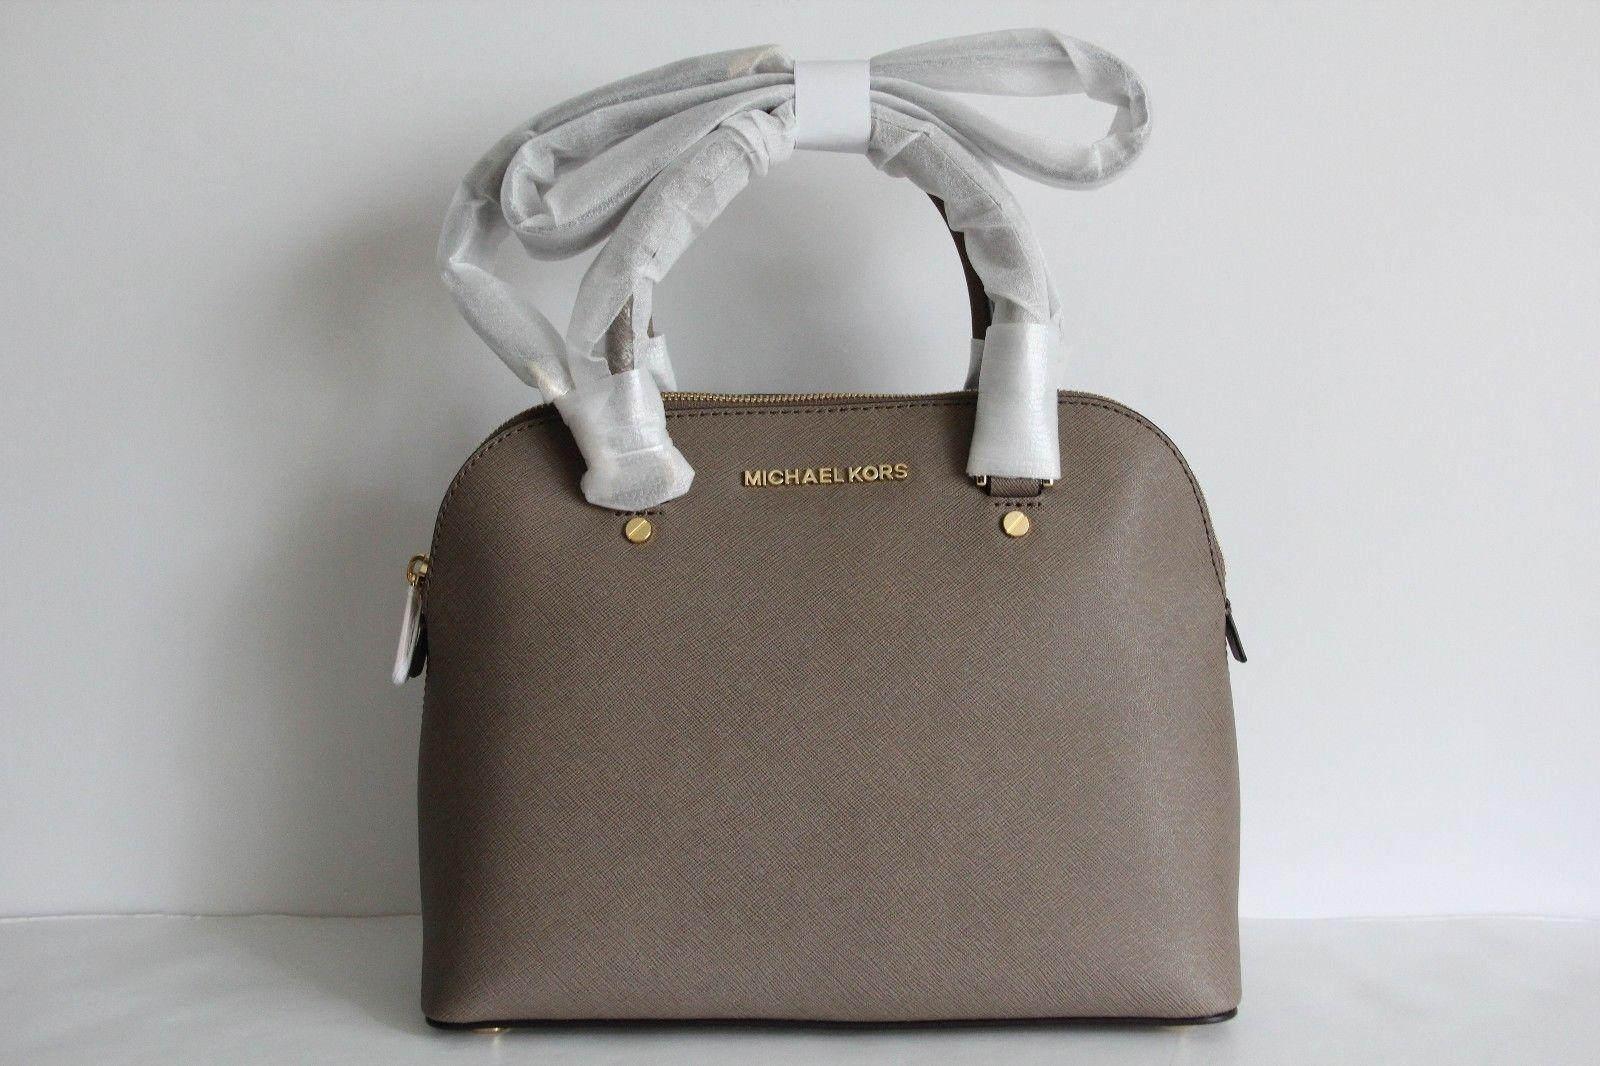 47f48e538d ... canada michael kors cindy medium dome leather satchel in dark dune.  123456789 f1ae3 2d0e5